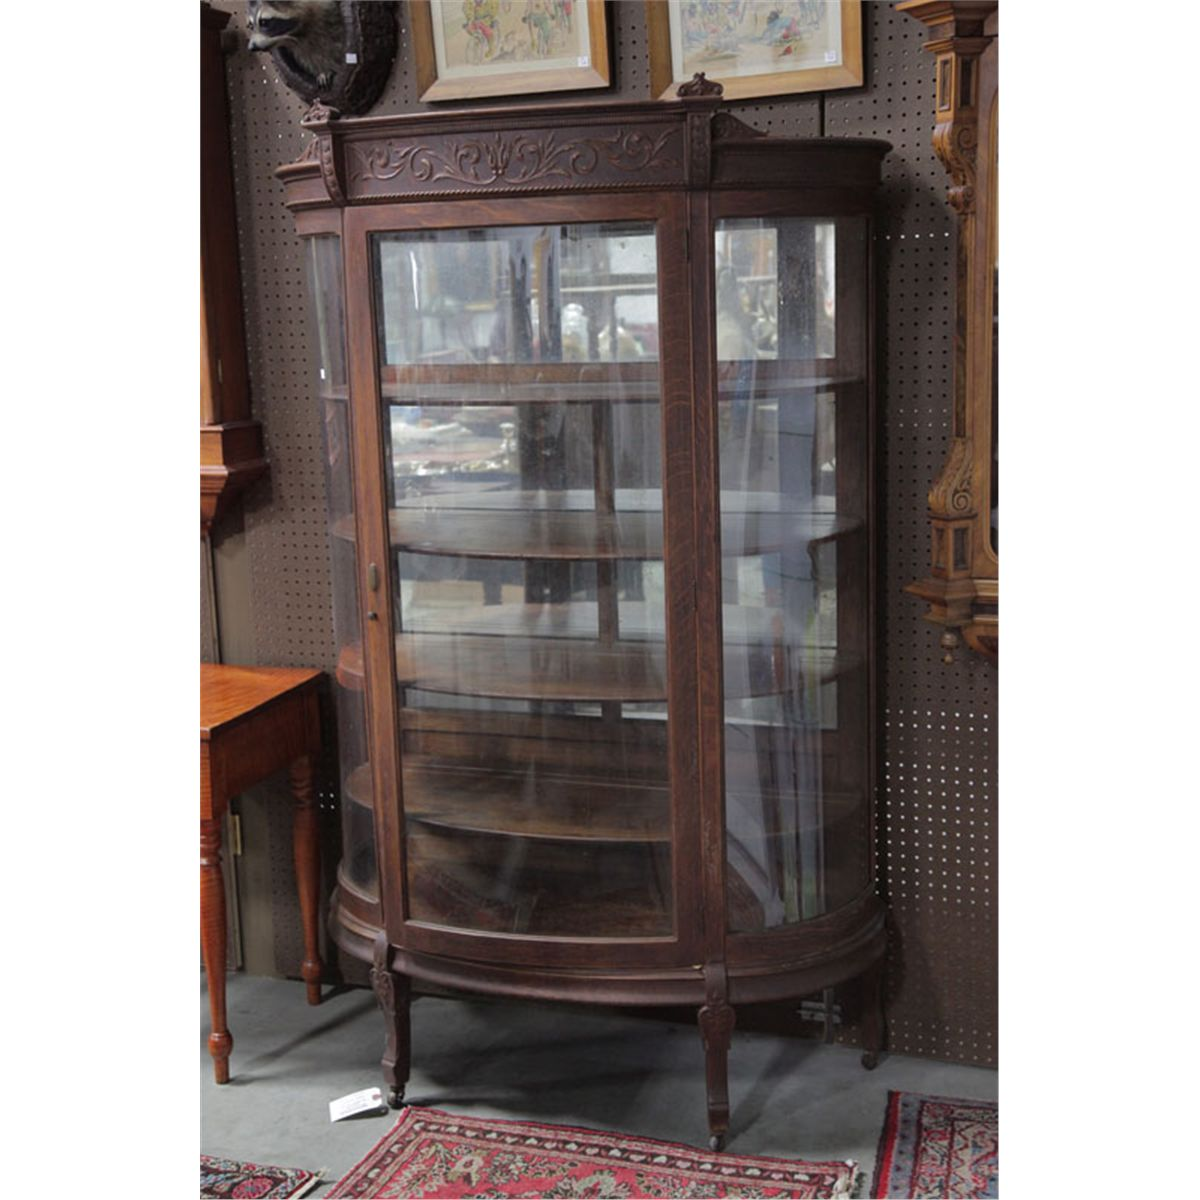 CHINA CABINET. Oak having a foliate carved crest, curved glass door and  sides and resting on shaped - CHINA CABINET. Oak Having A Foliate Carved Crest, Curved Glass Door